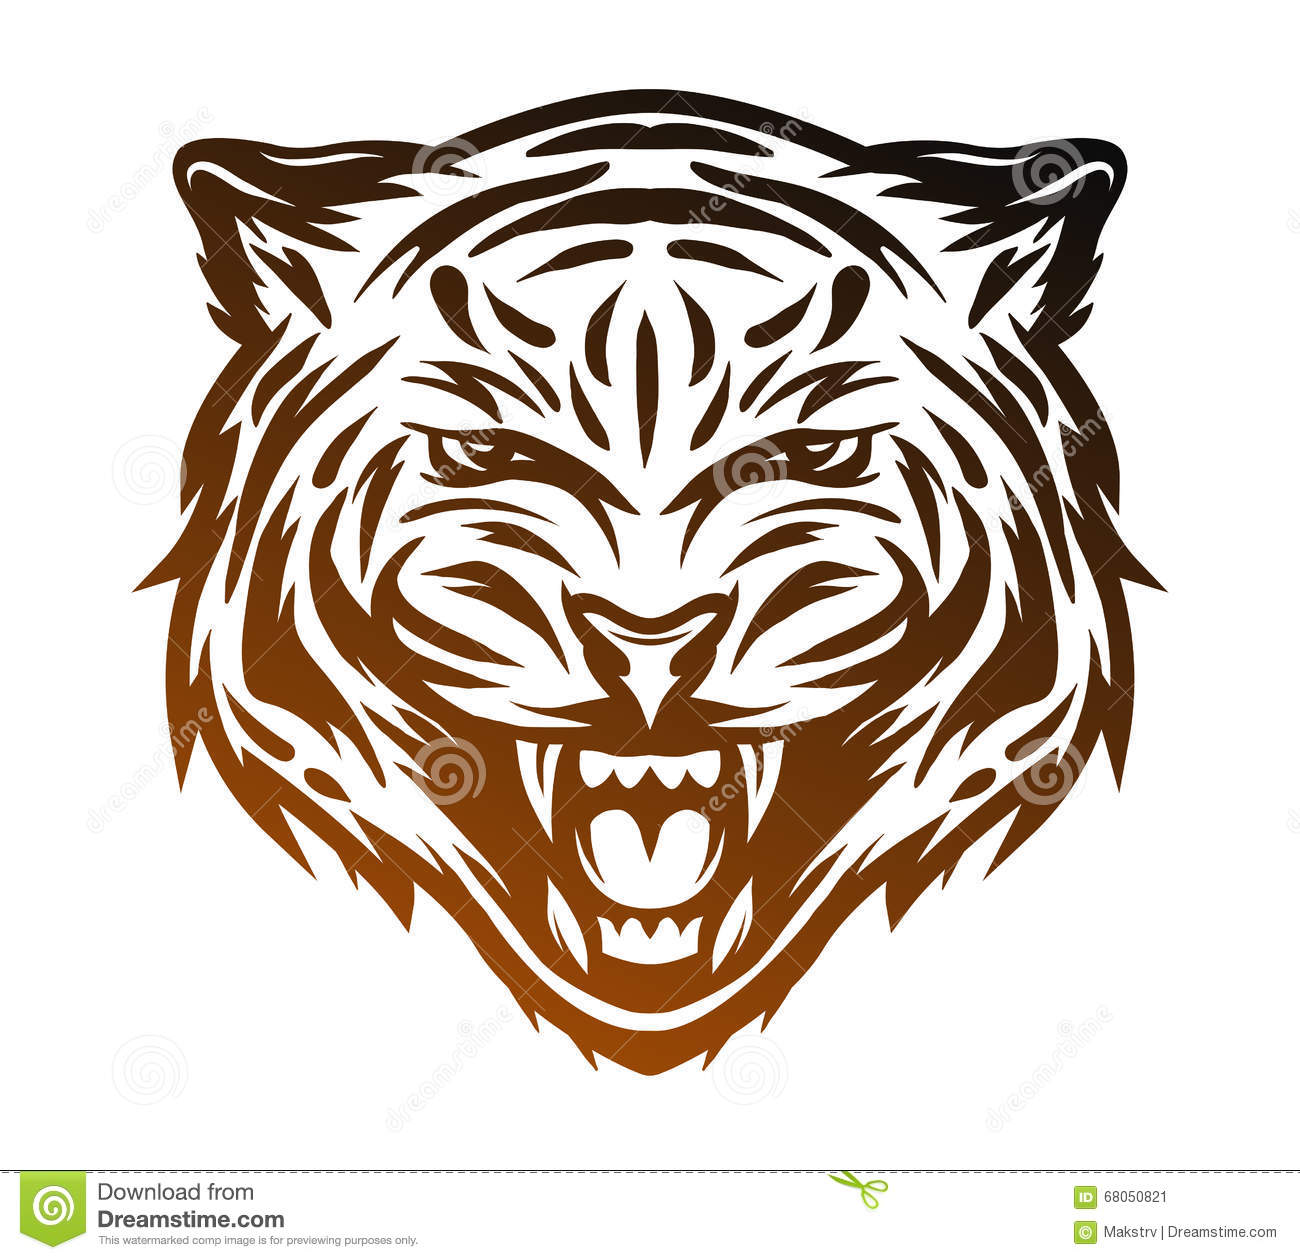 Line Drawing Of A Tiger S Face : Aggressive tiger face line art style stock vector